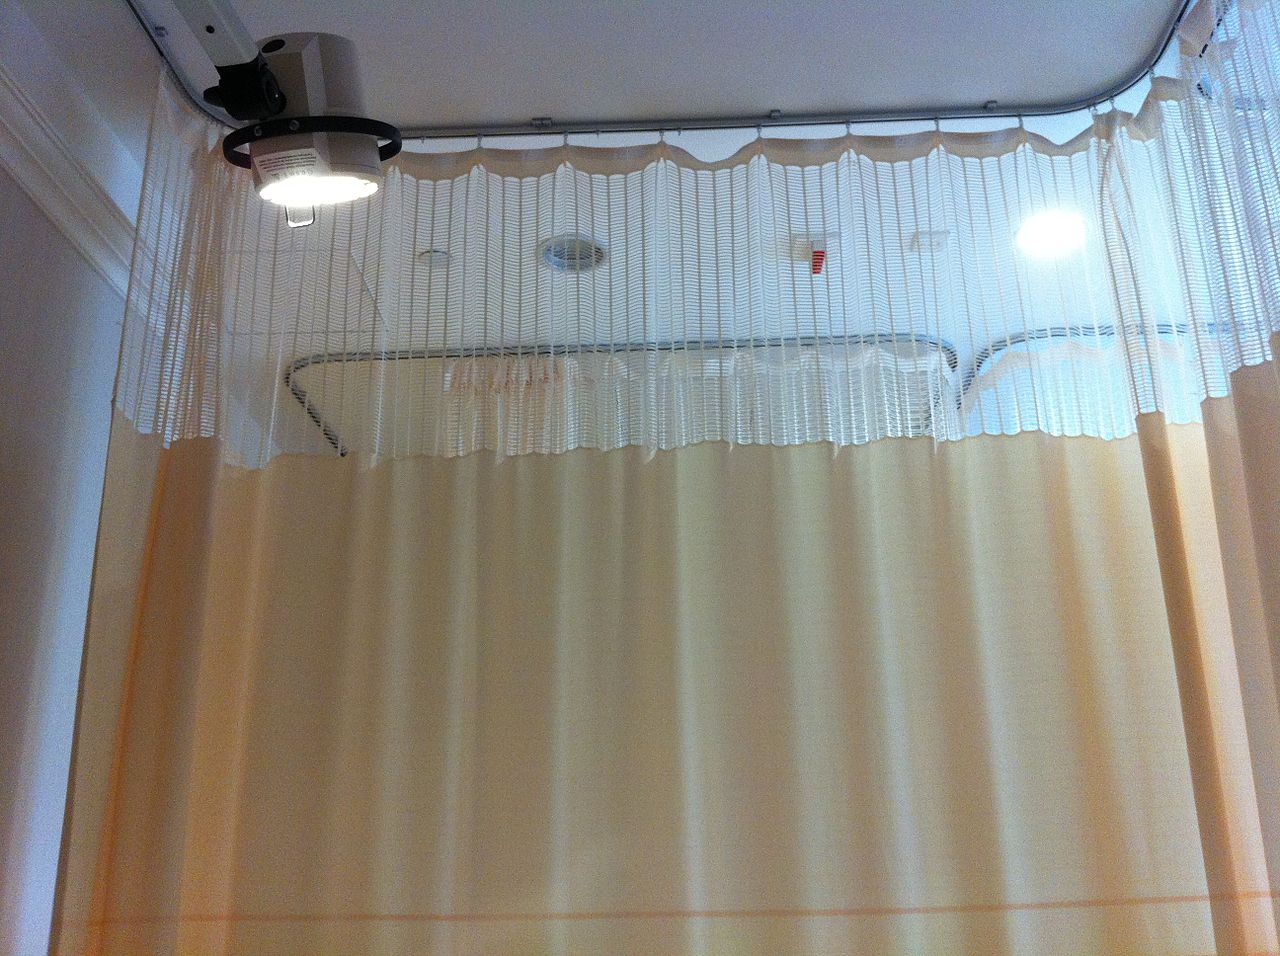 hk_sph_st_pauls_hospital_room_curtain_nov-2013